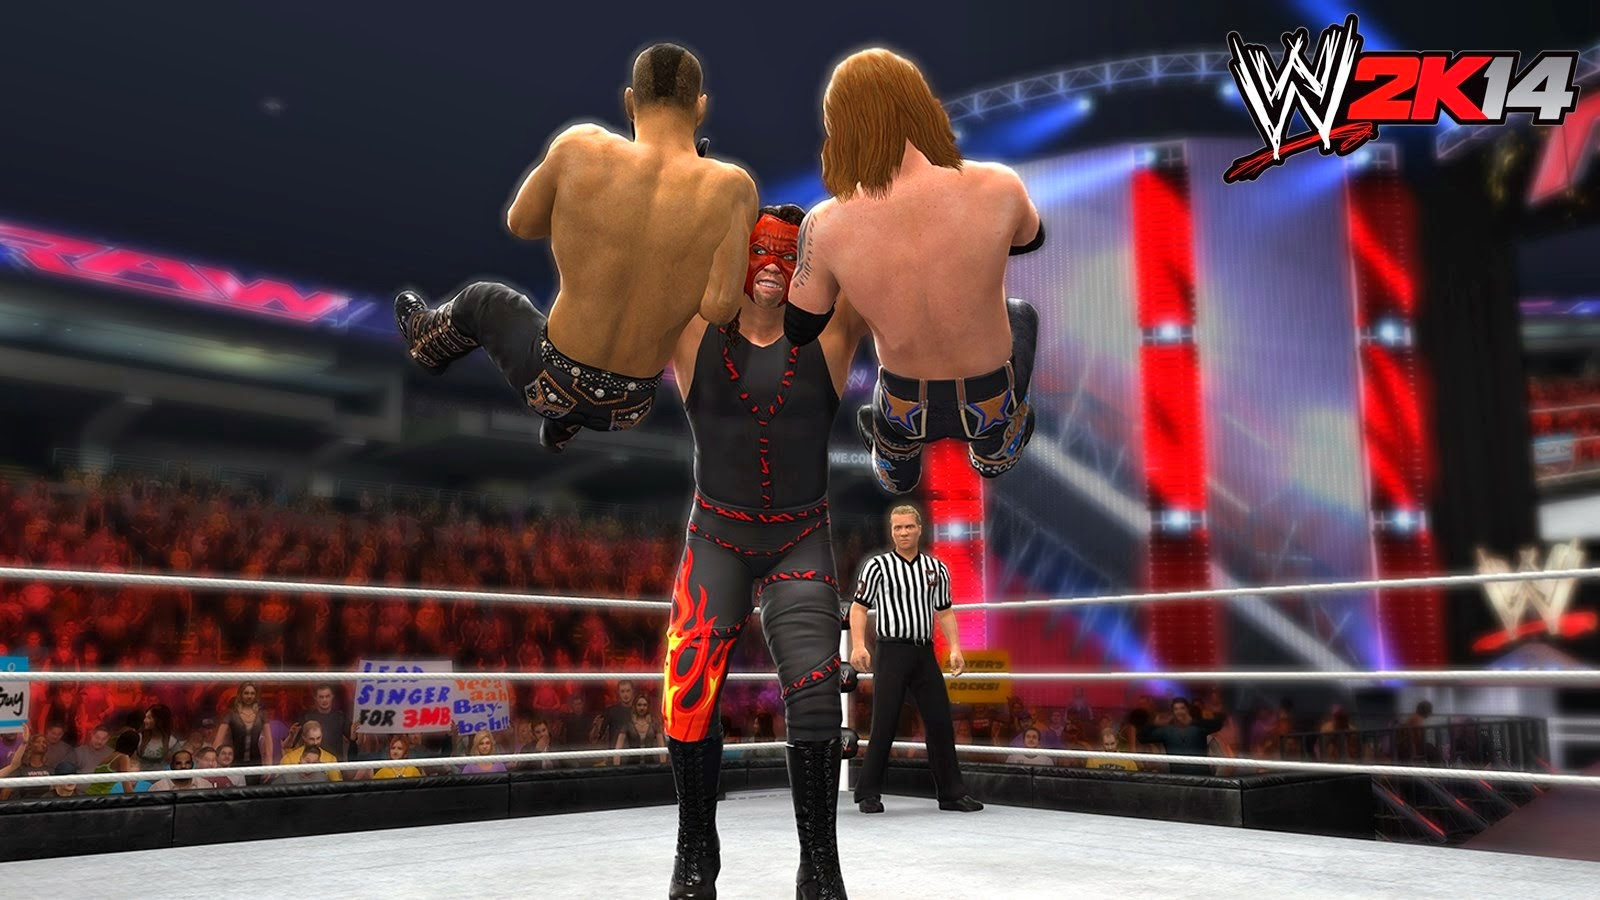 WWE 2K14 Game for xbox 360 - Top Games Free Download Full